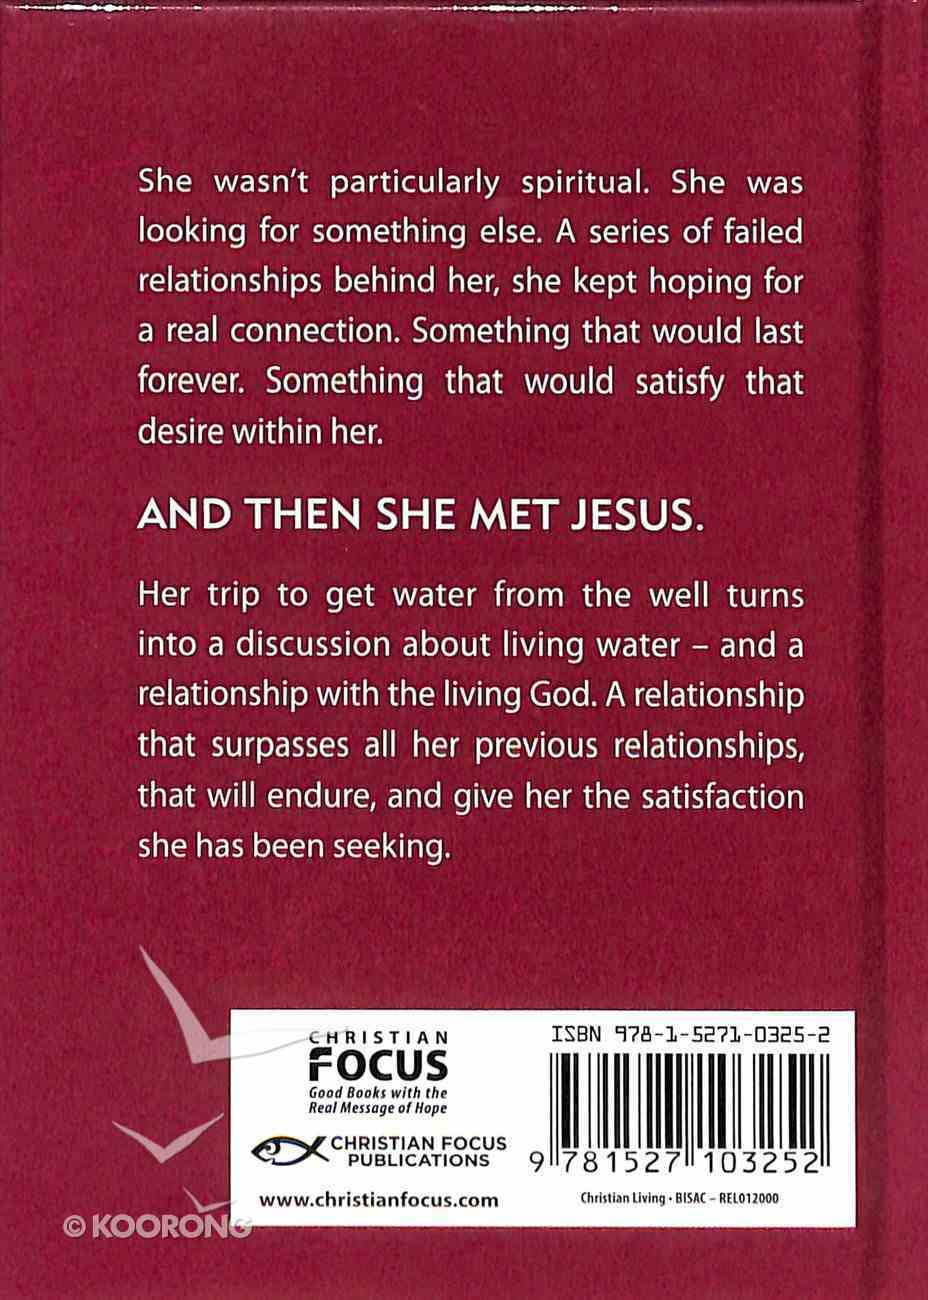 A Conversation With Jesus... on Relationships Hardback